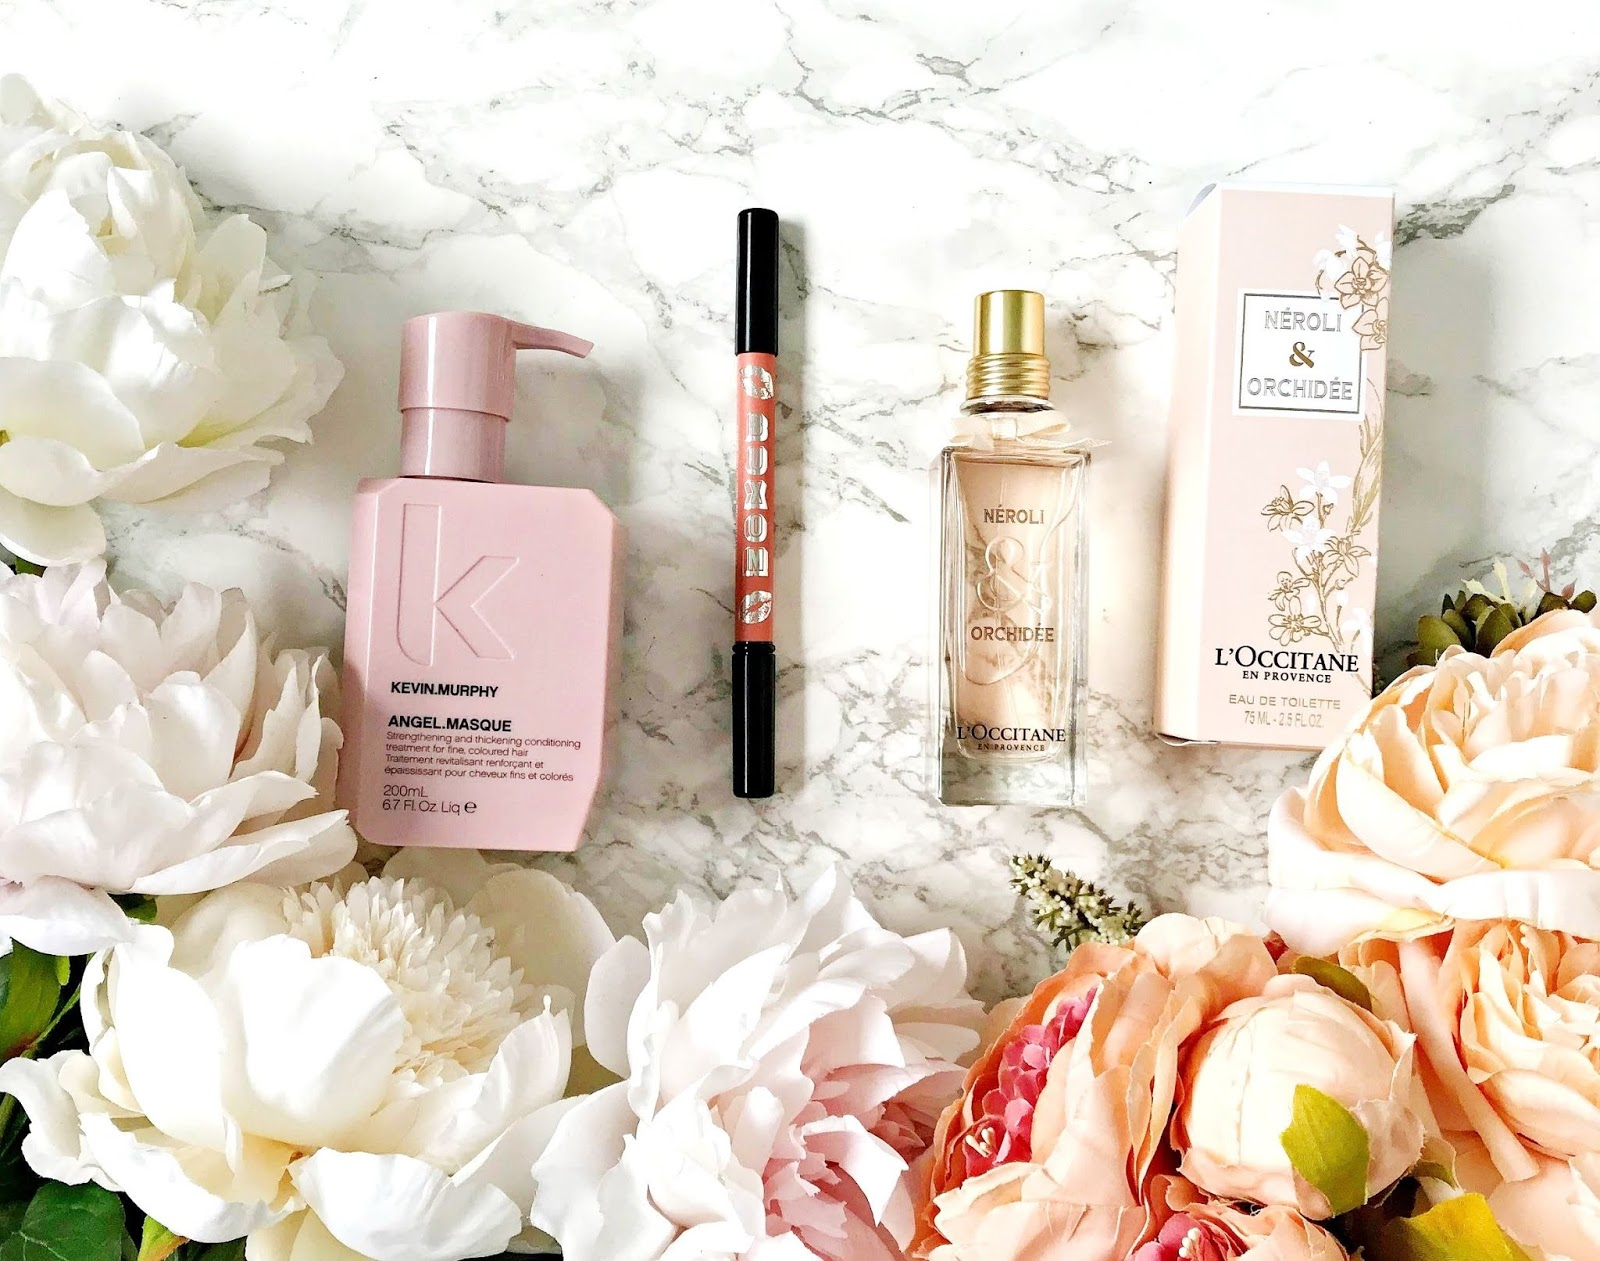 Kevin Murphy Angel Masque Review, Buxom PlumpLine Lip Liner Review, L'Occitane Neroli & Orchidée EDT review